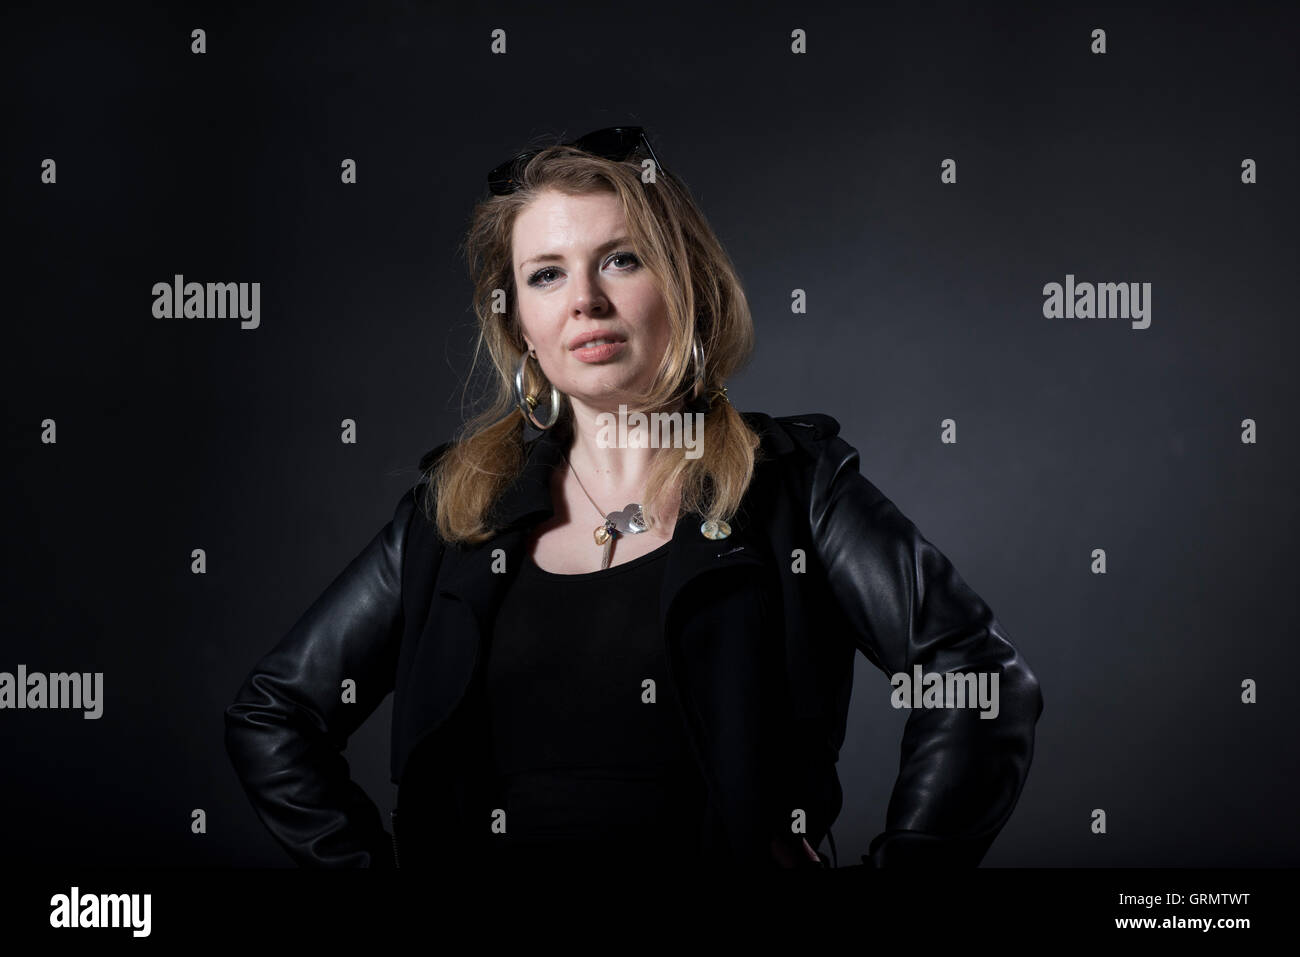 Music writer Zoe Howe. - Stock Image